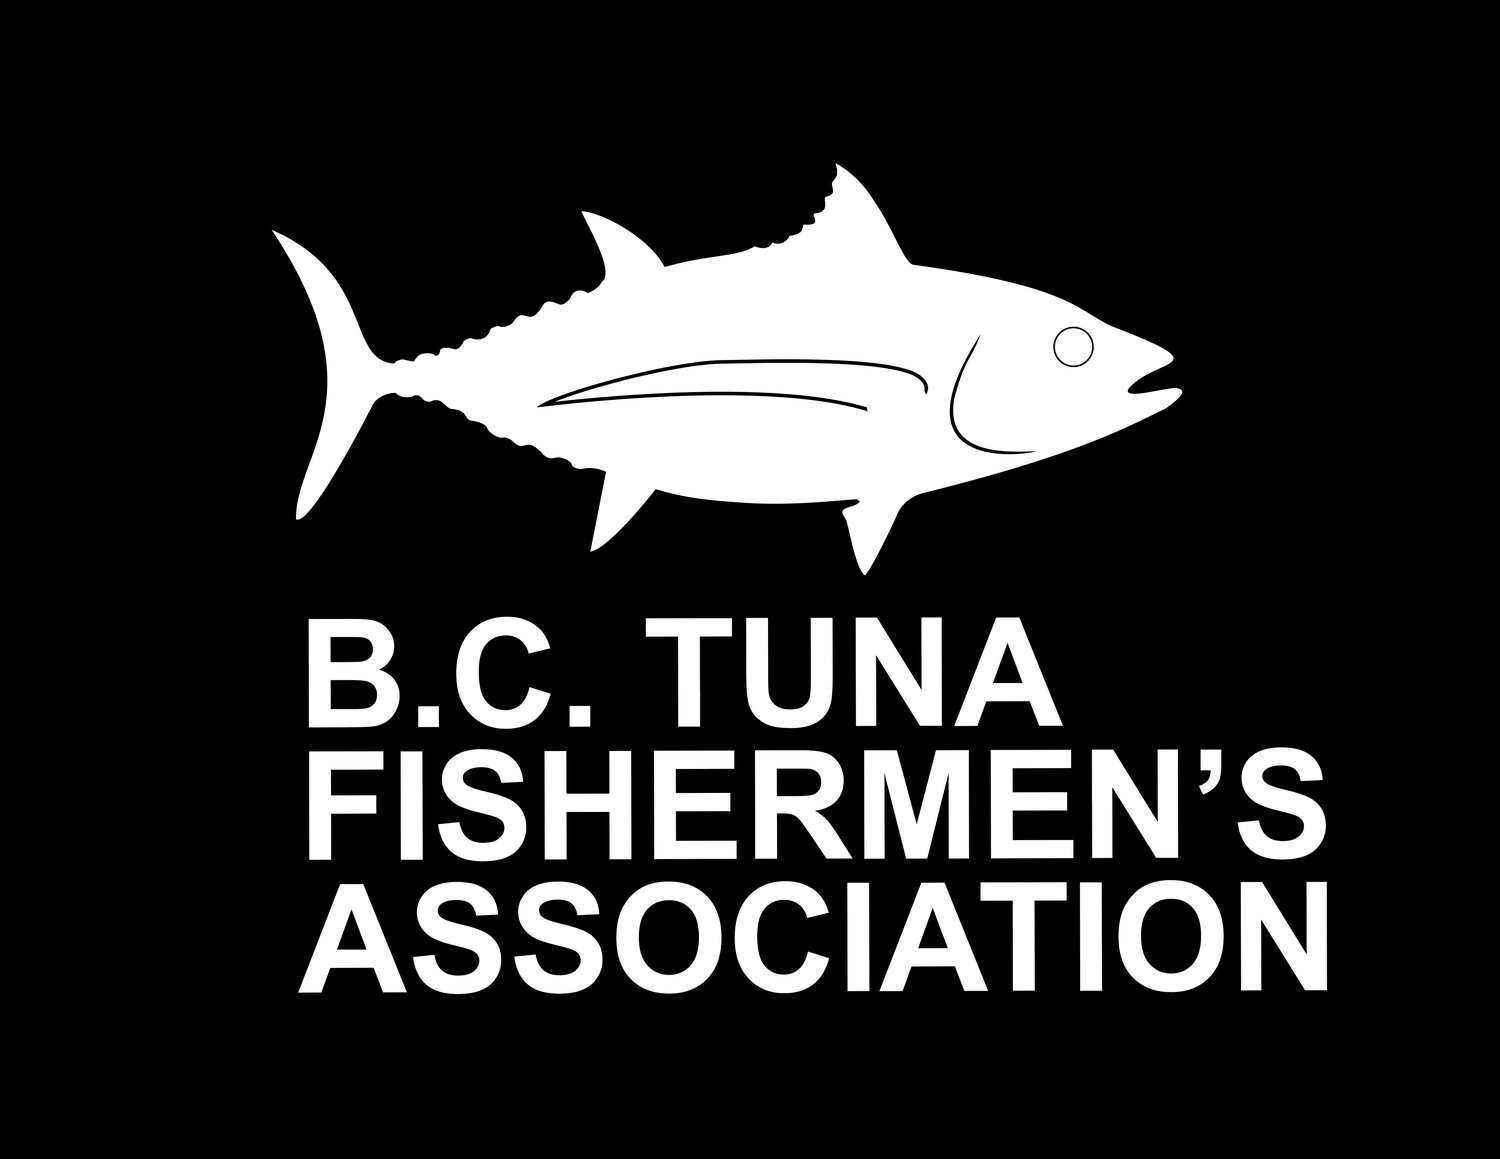 B.C. Tuna Fishermen's Association